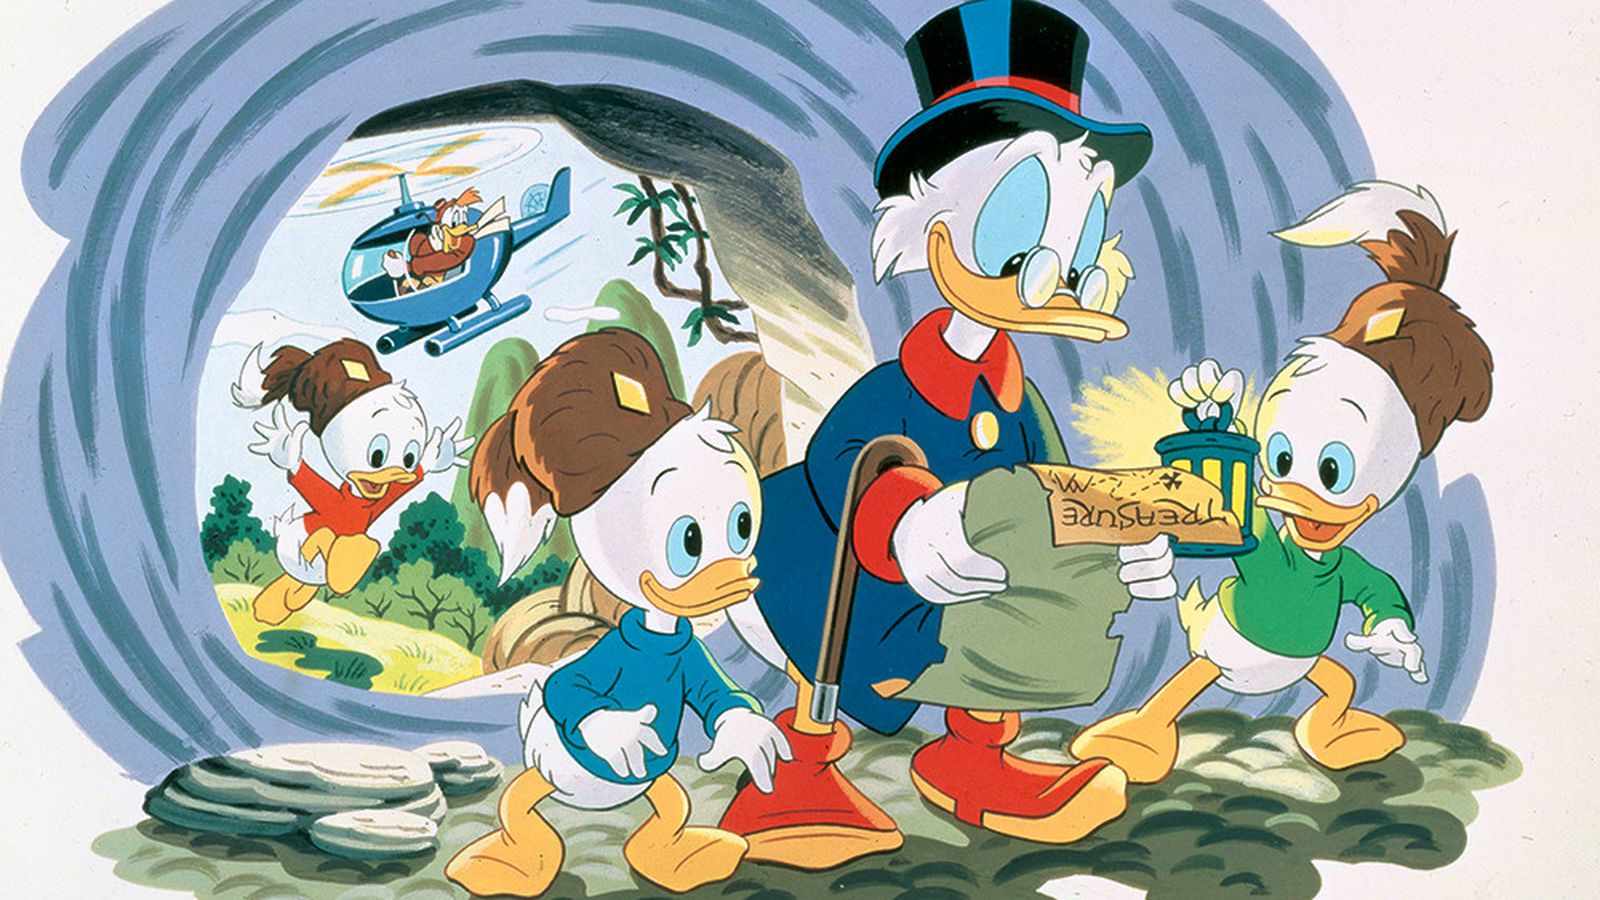 DuckTales cartoon returns in 2017, might solve a mystery ...